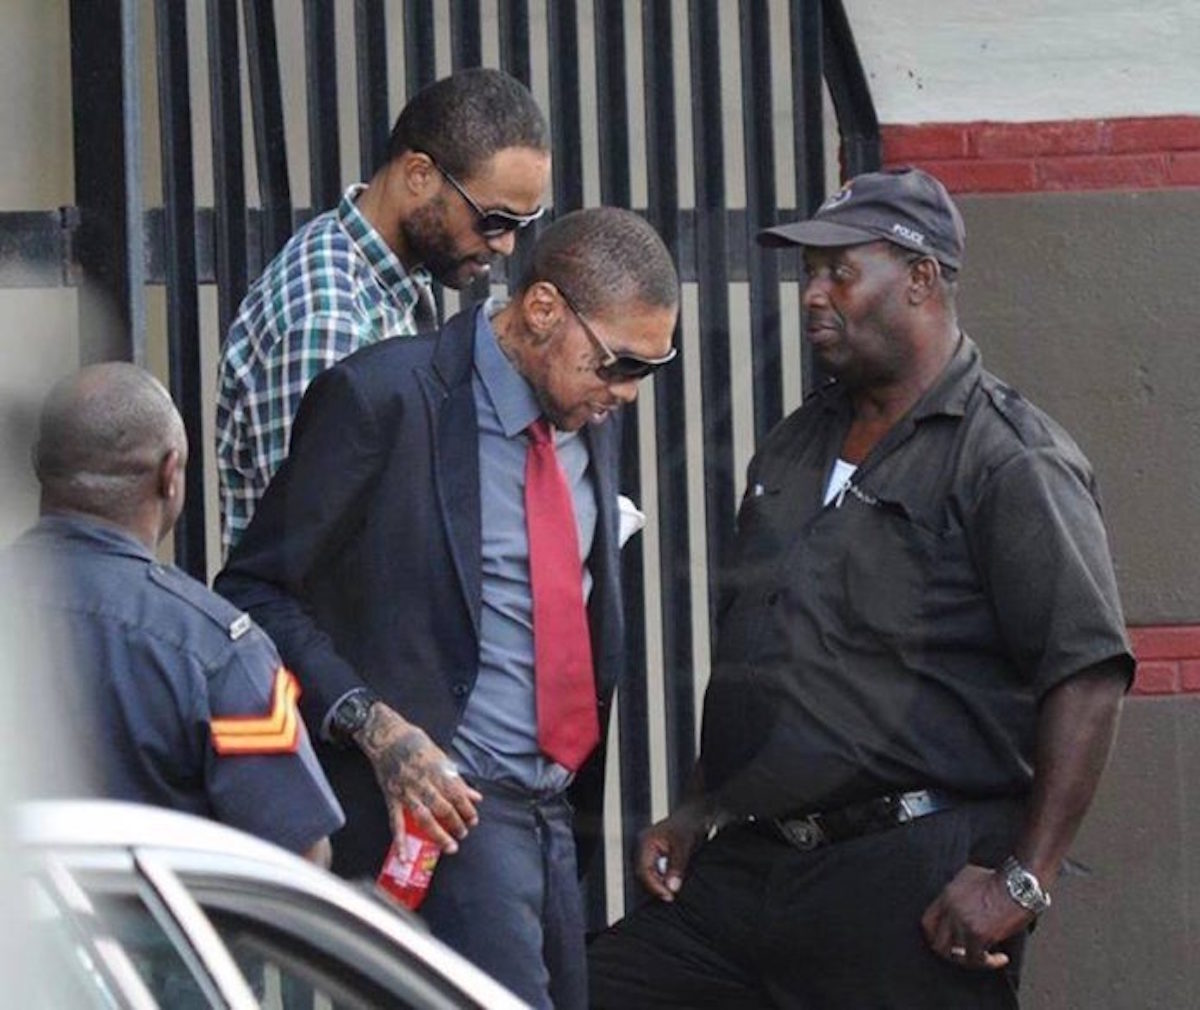 Jurors On The Vybz Kartel Murder Case Unhappy With New Life Overseas 2